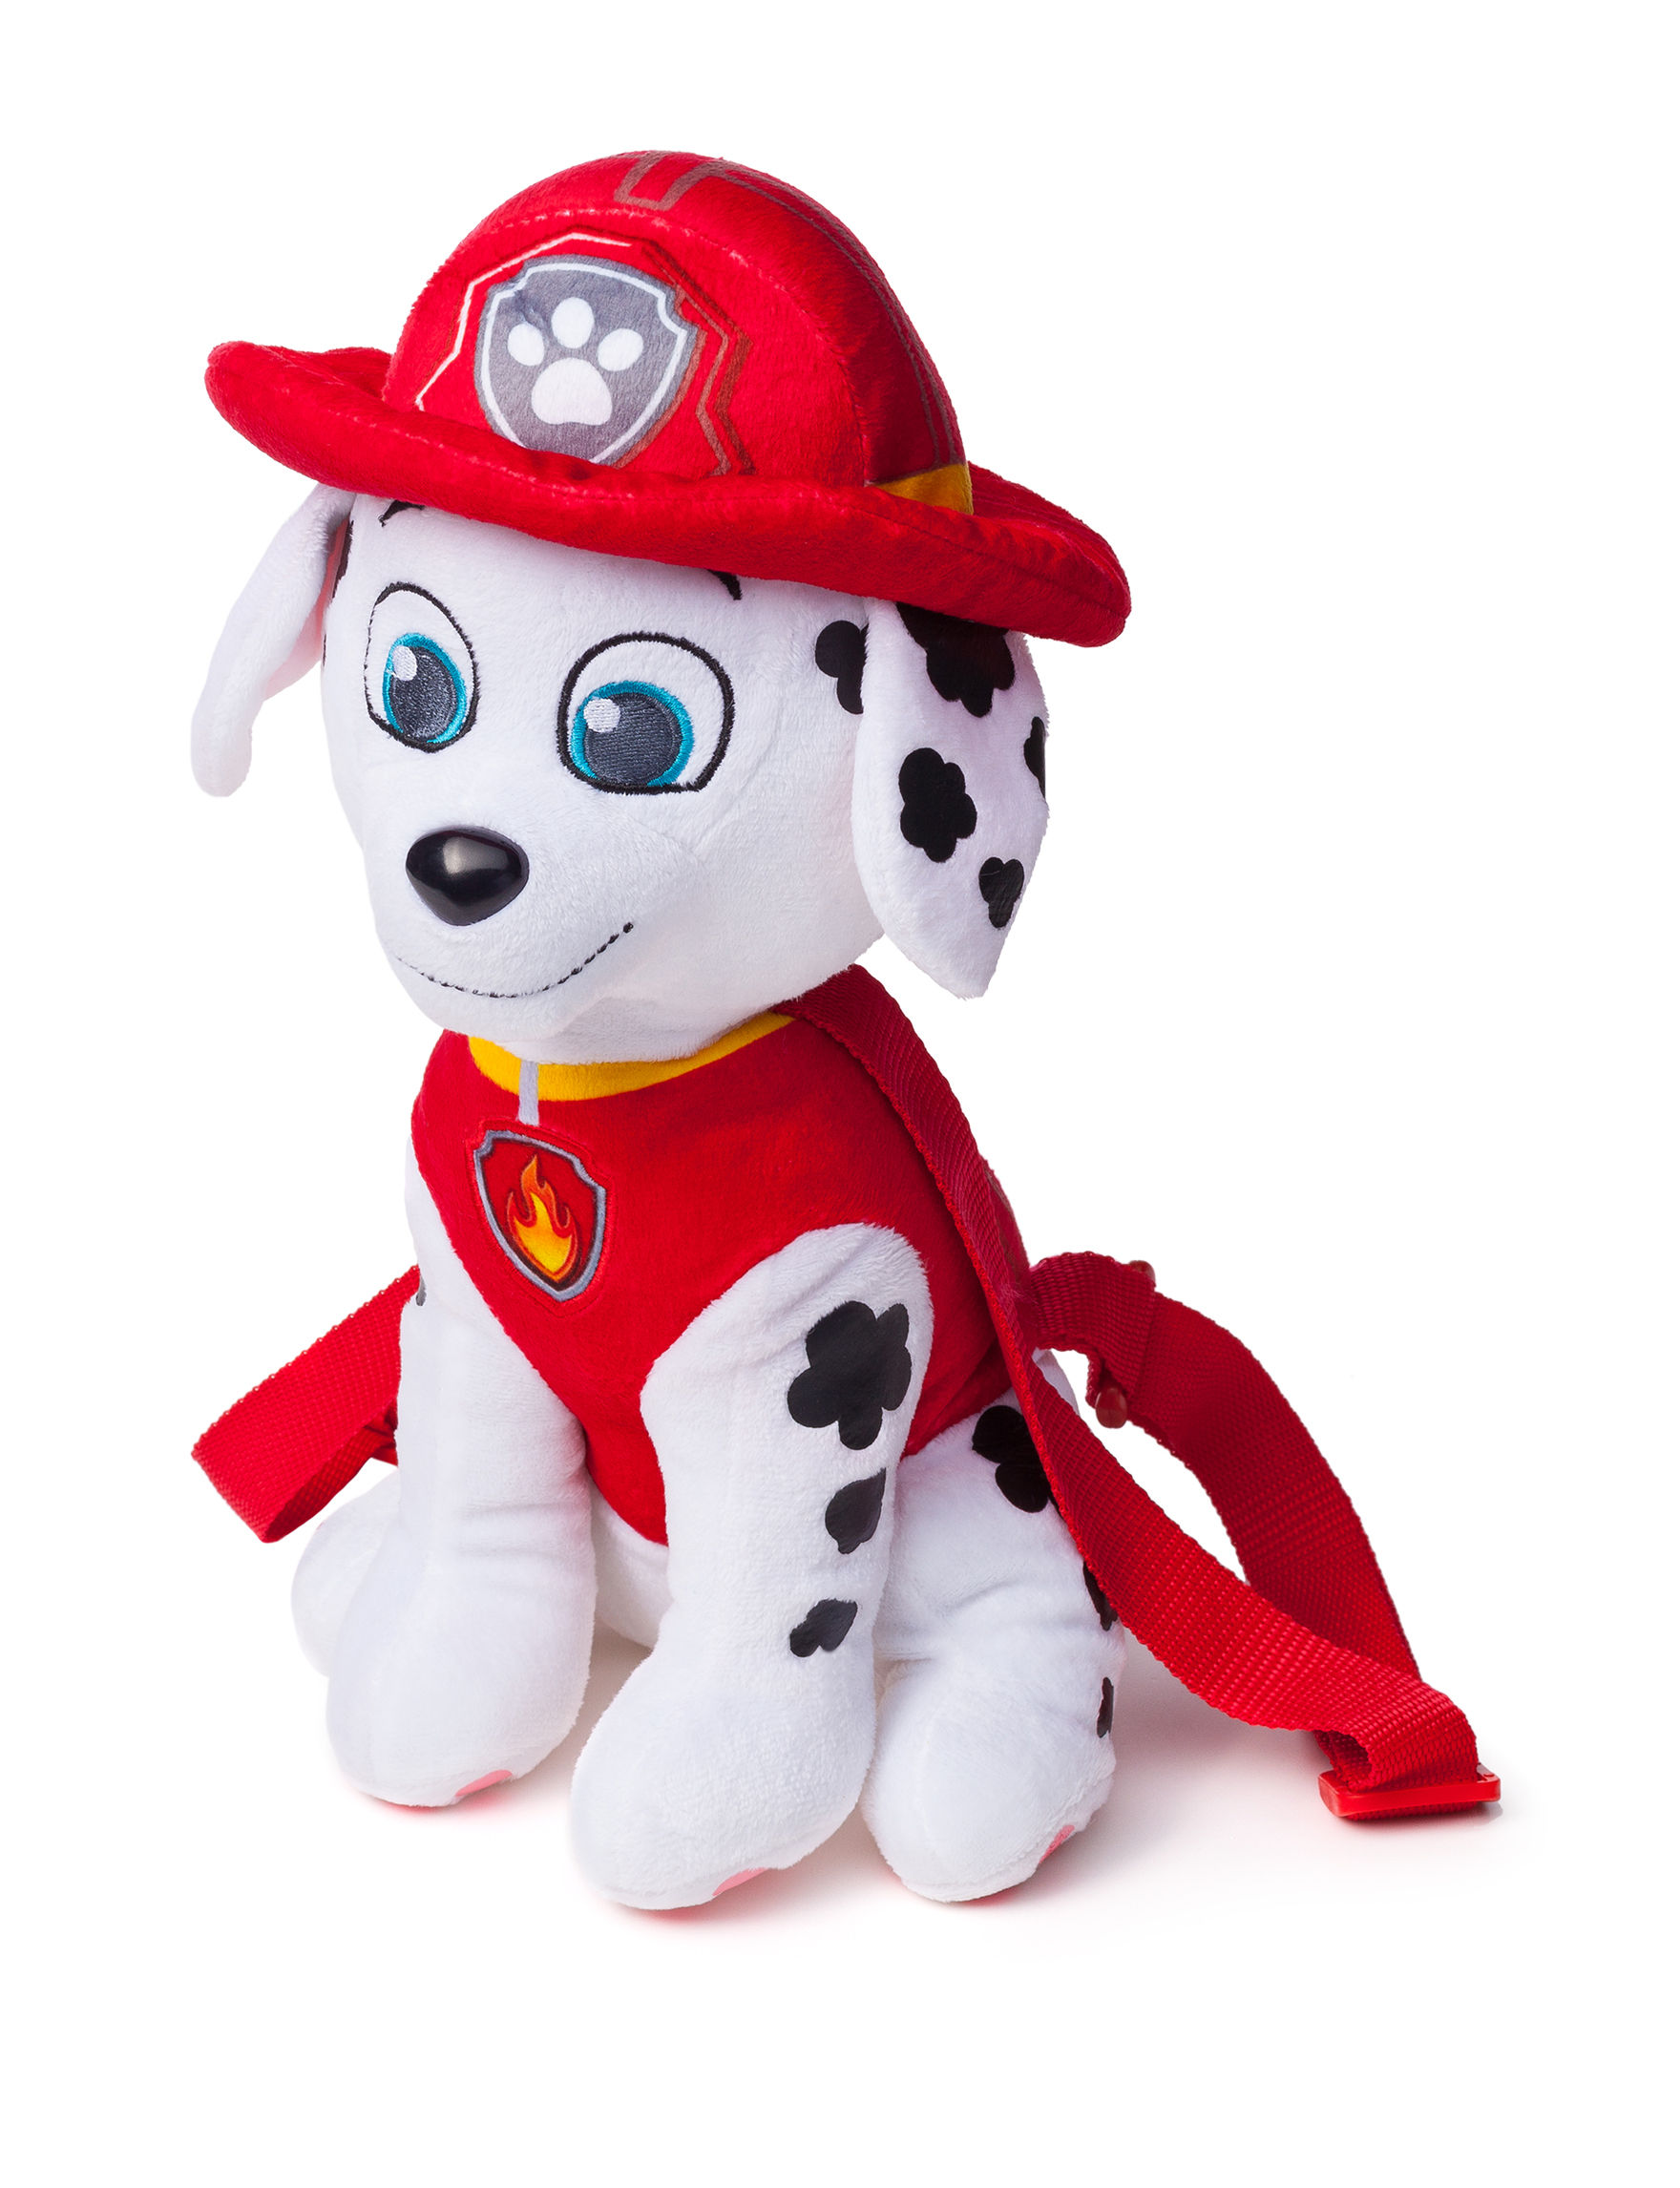 Paw Patrol Red Bookbags & Backpacks